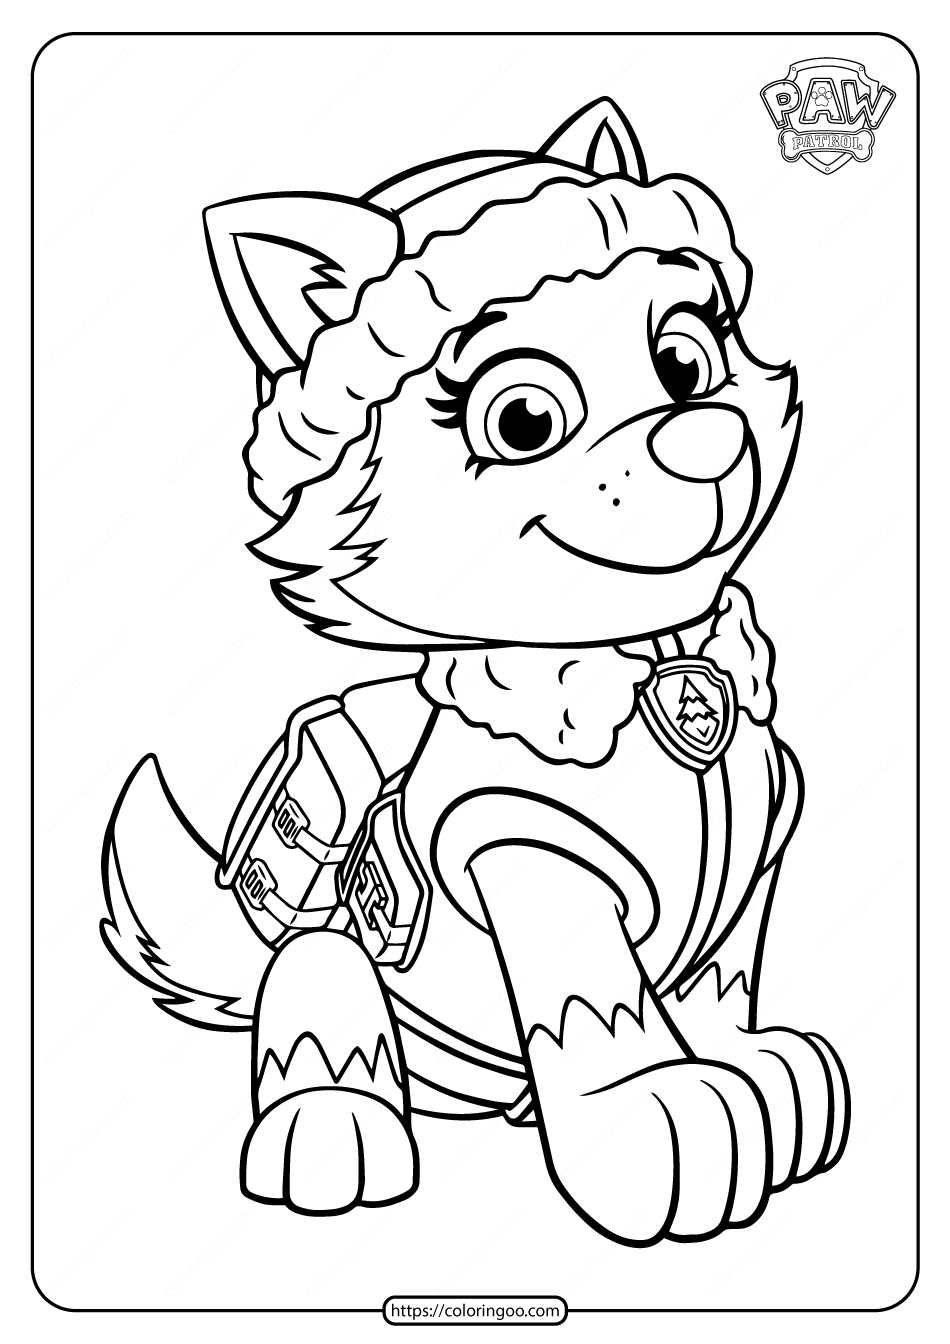 Printable Paw Patrol Everest Coloring Pages for Kids